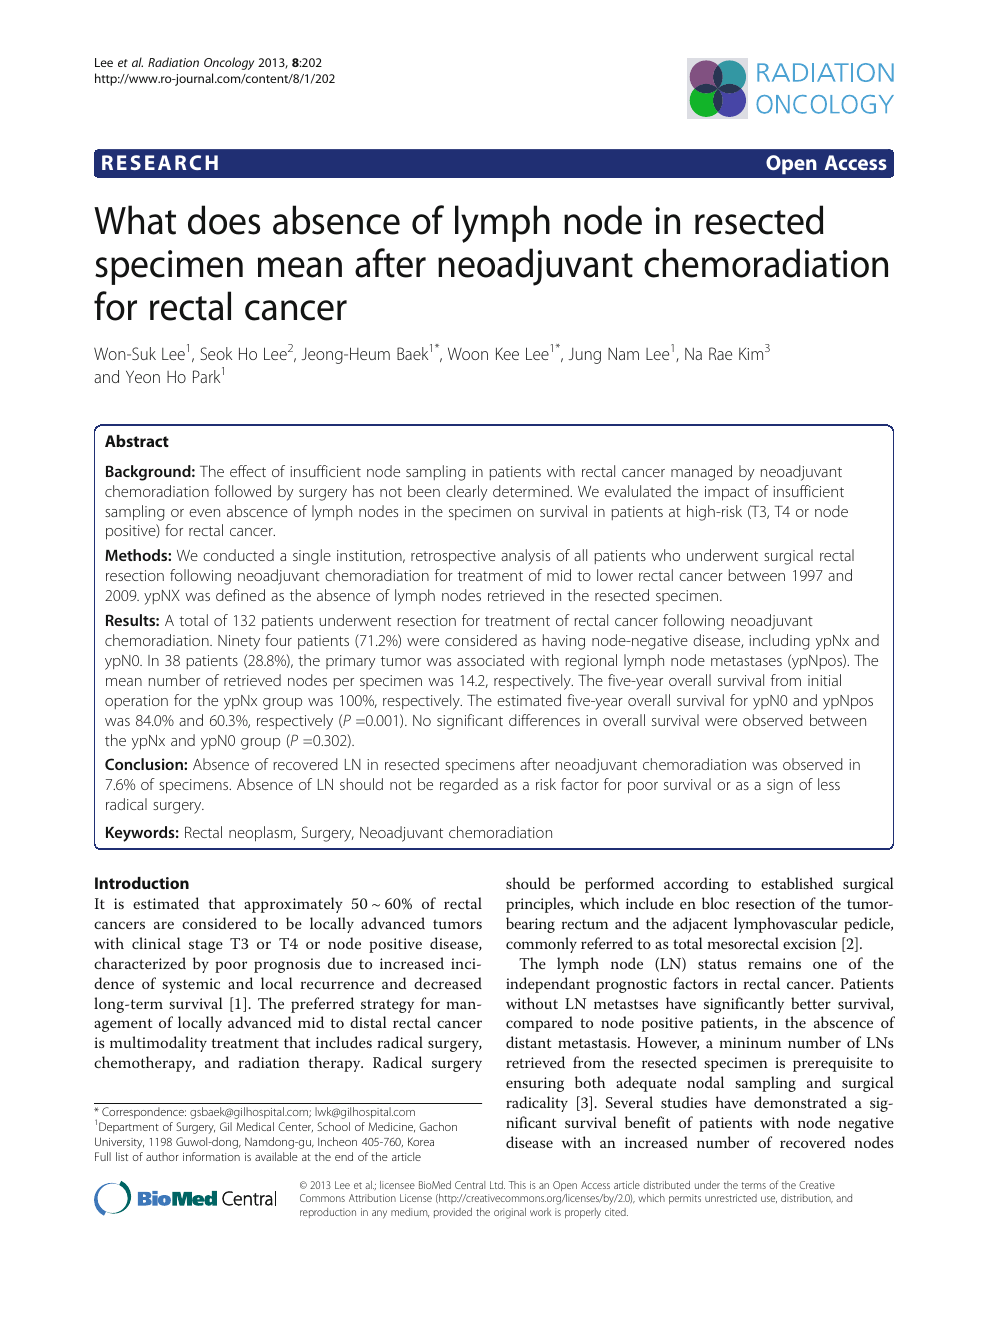 What Does Absence Of Lymph Node In Resected Specimen Mean After Neoadjuvant Chemoradiation For Rectal Cancer Topic Of Research Paper In Clinical Medicine Download Scholarly Article Pdf And Read For Free